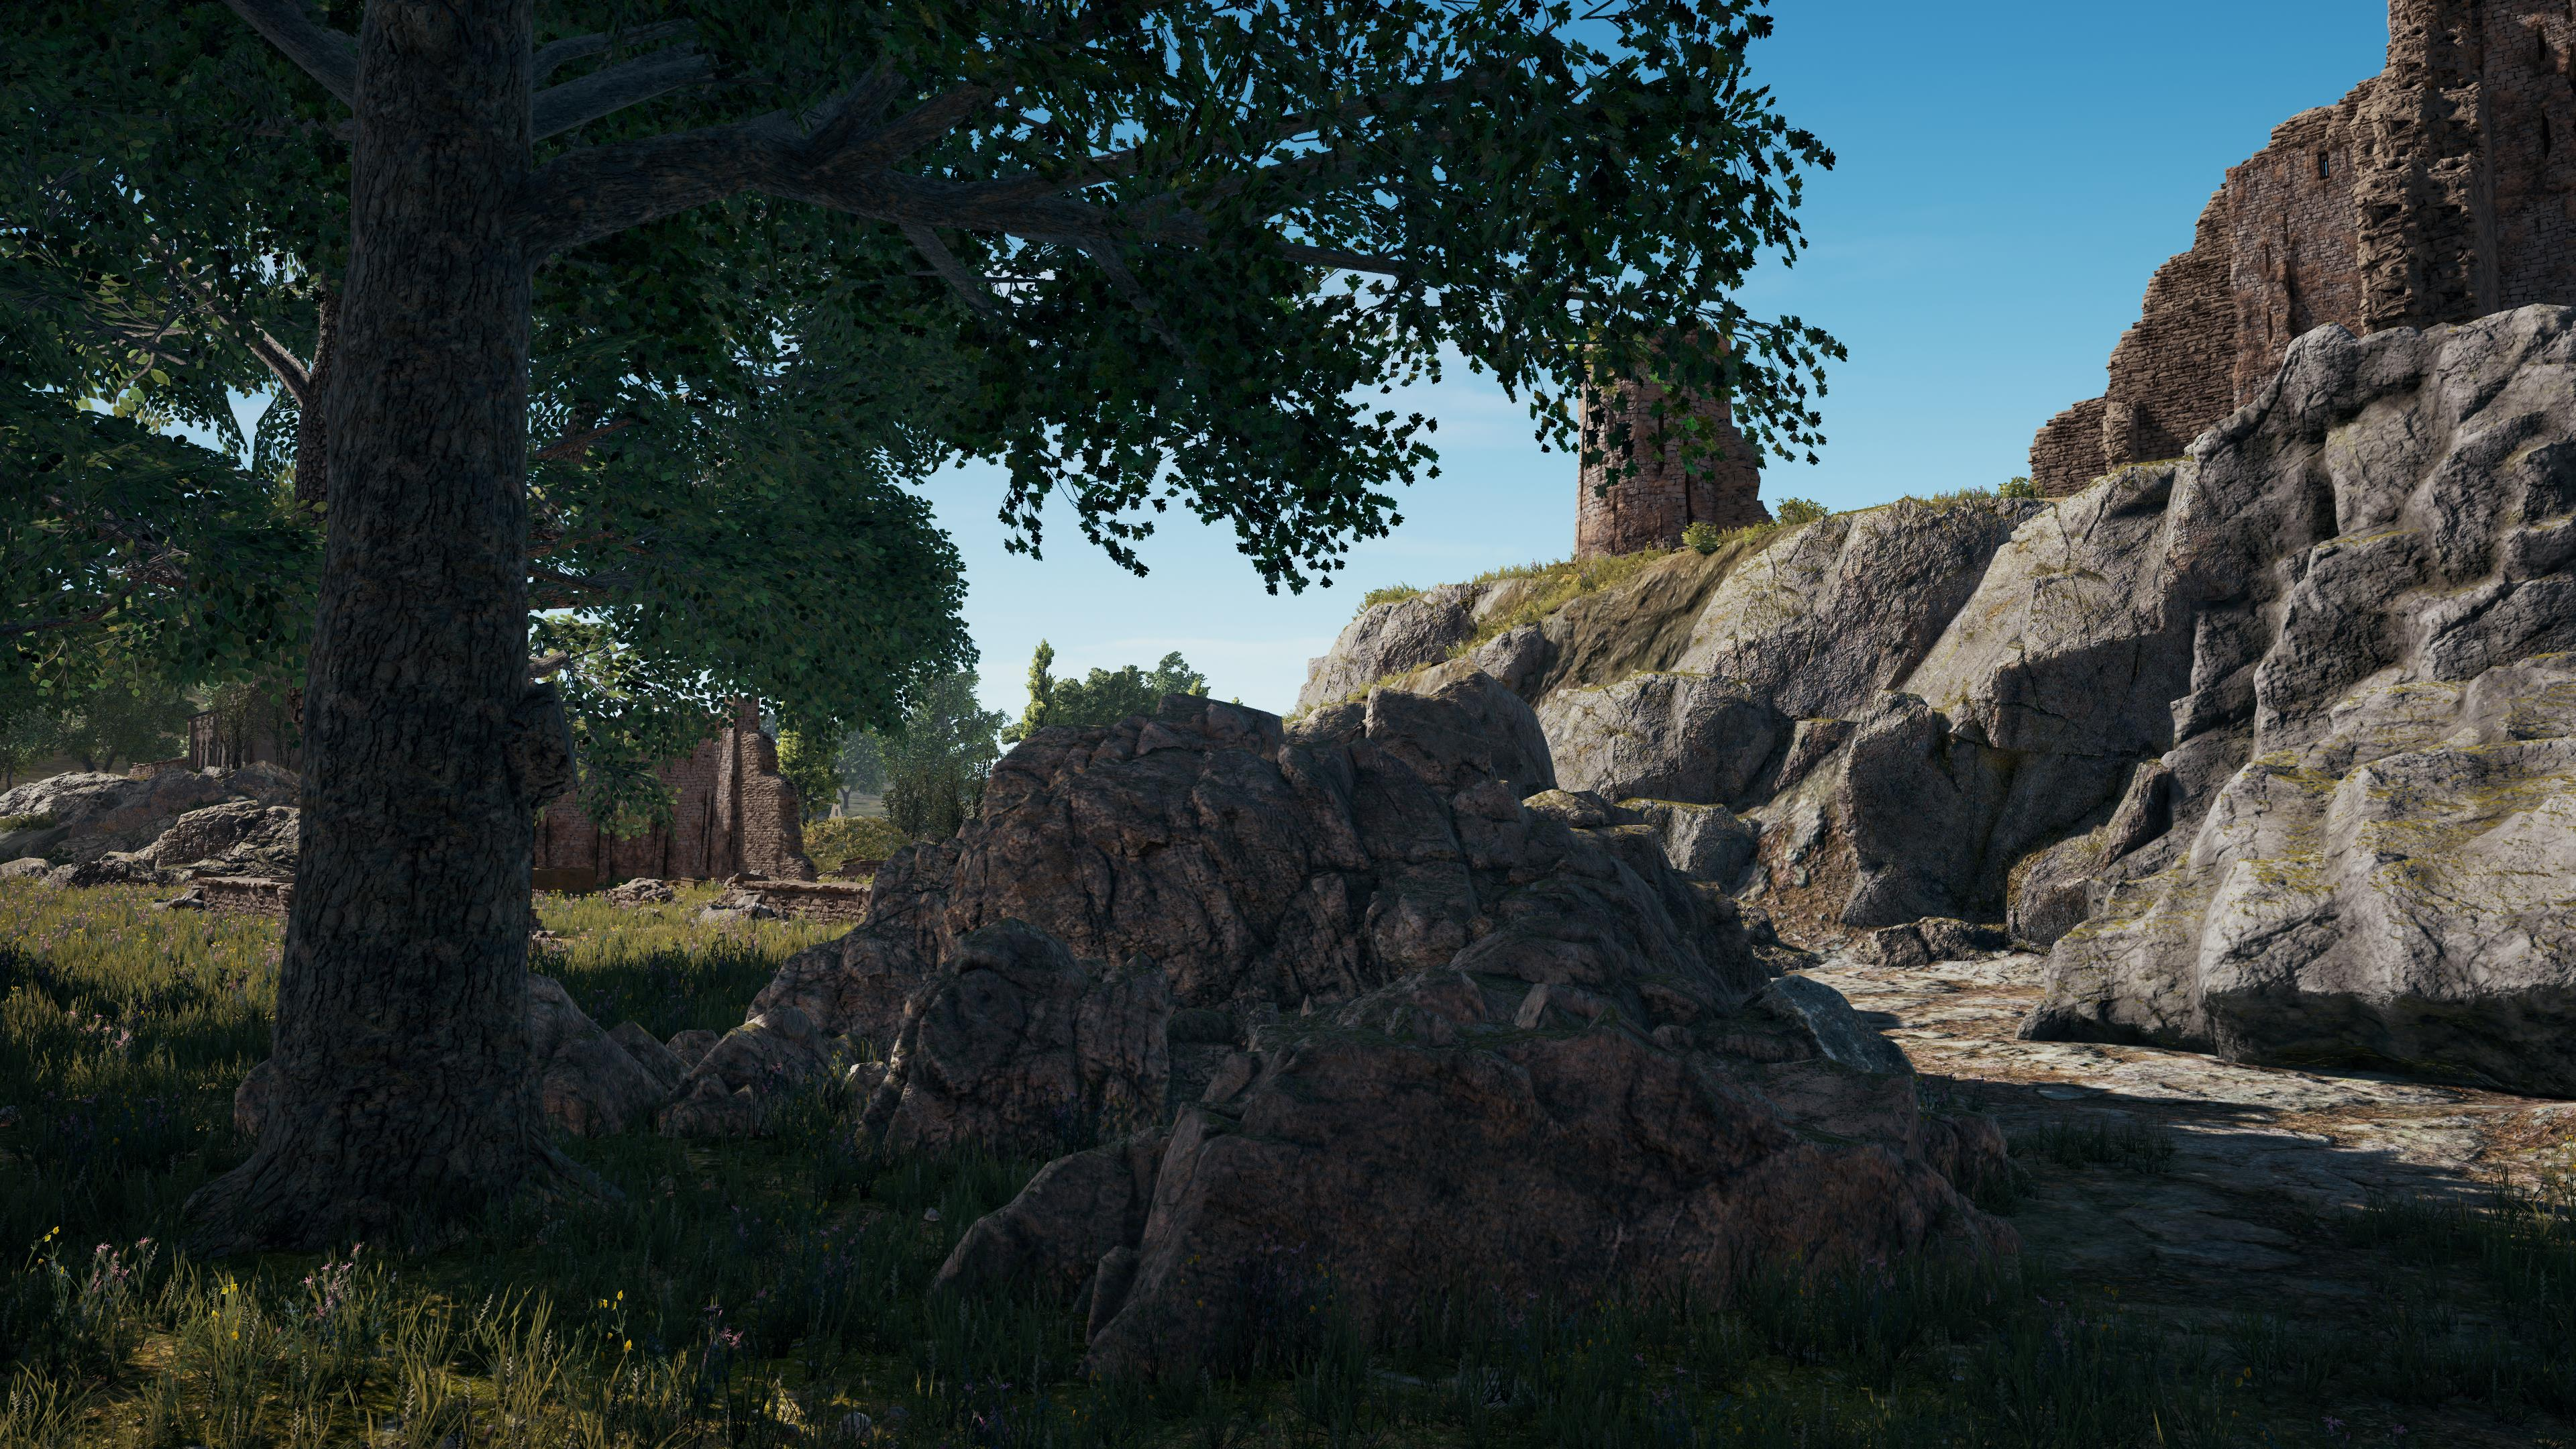 Pubg Hd Quality: Playerunknown's Battlegrounds Wallpapers High Quality